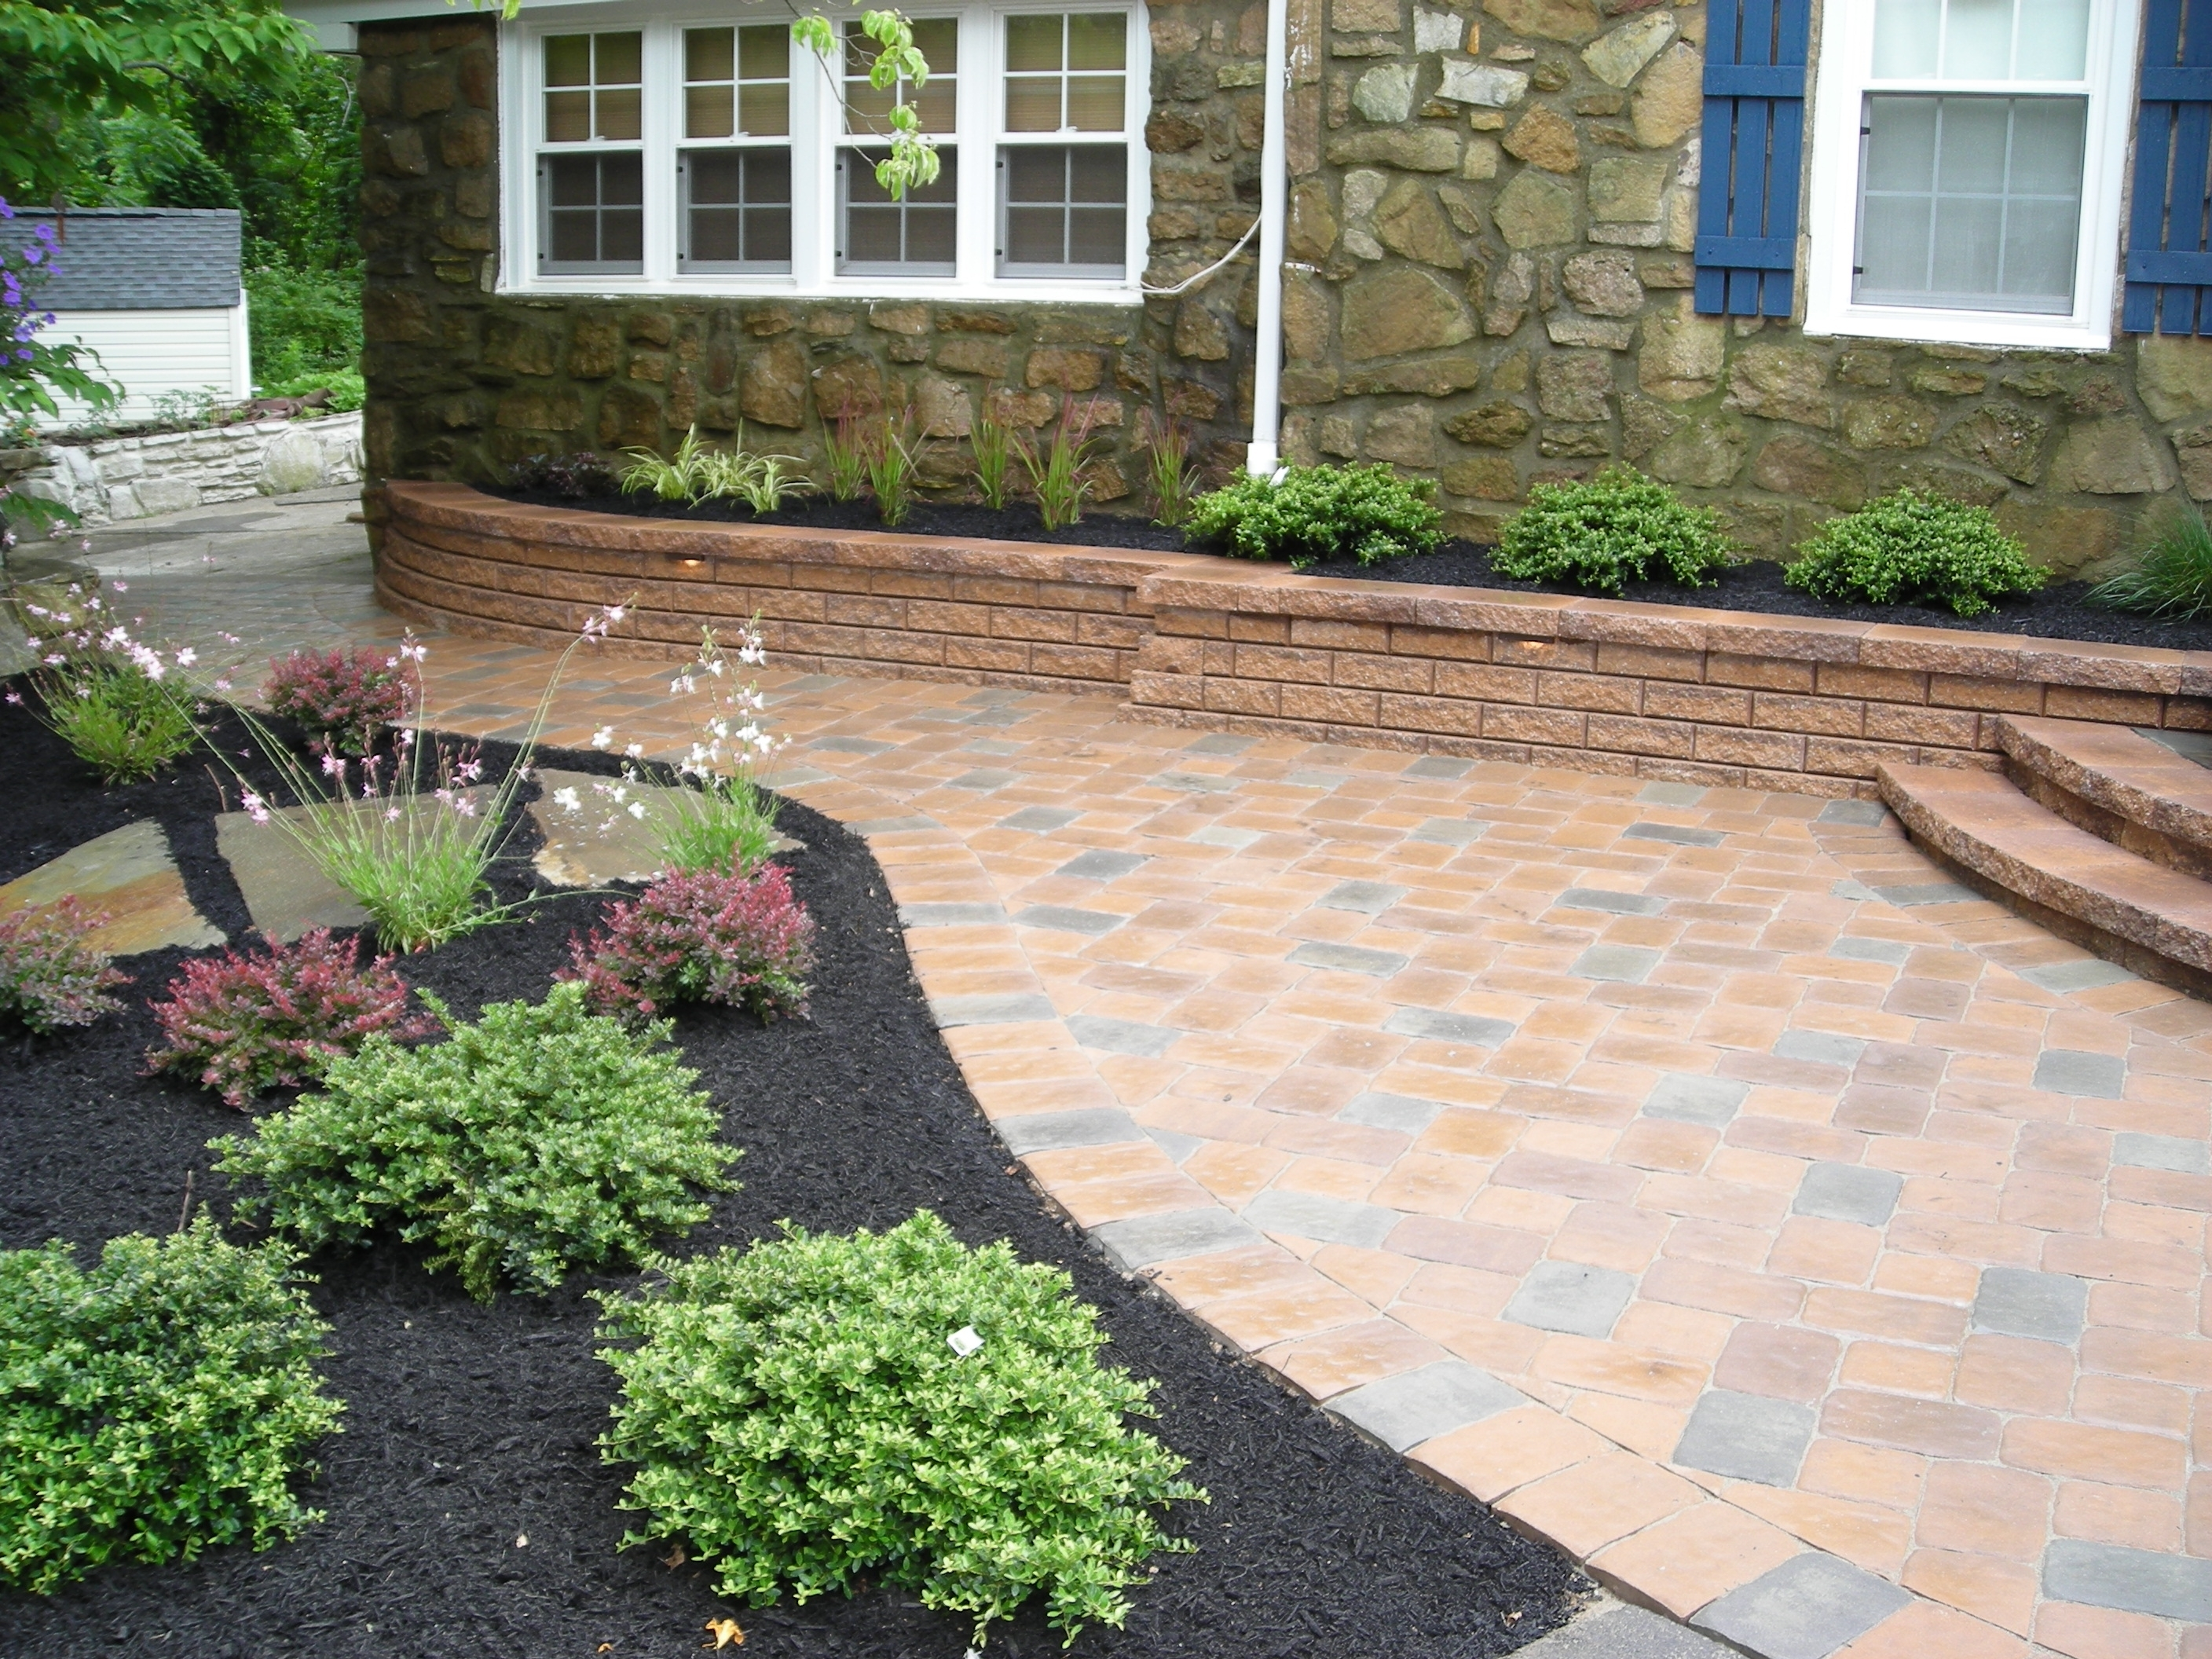 Patio Landscaping Of Paving Ideas For Small Back Gardens Garden Design